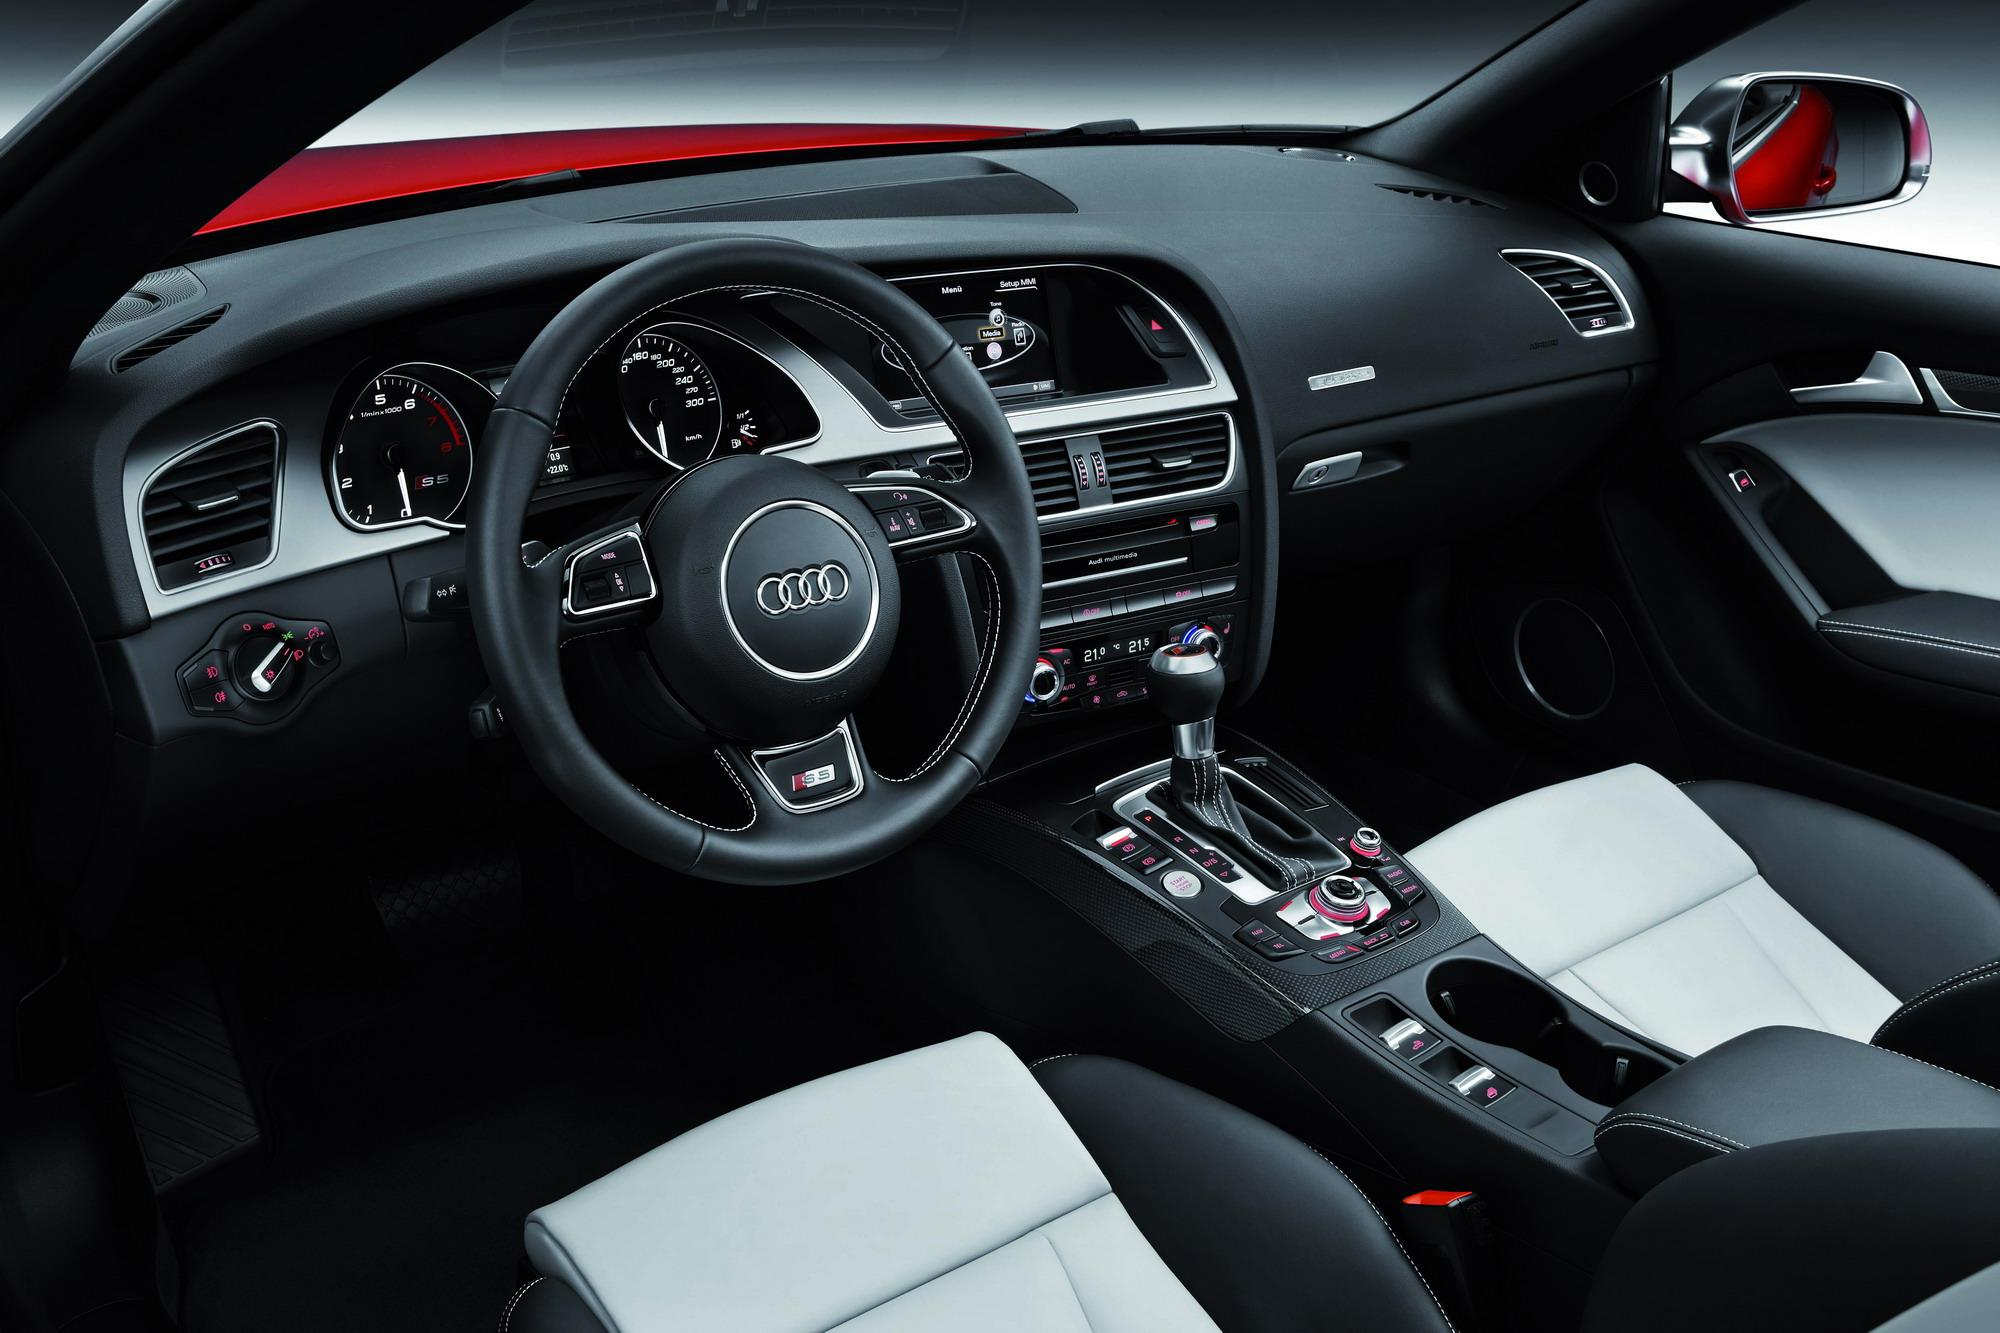 2012 Audi S5 Convertible | Top Speed